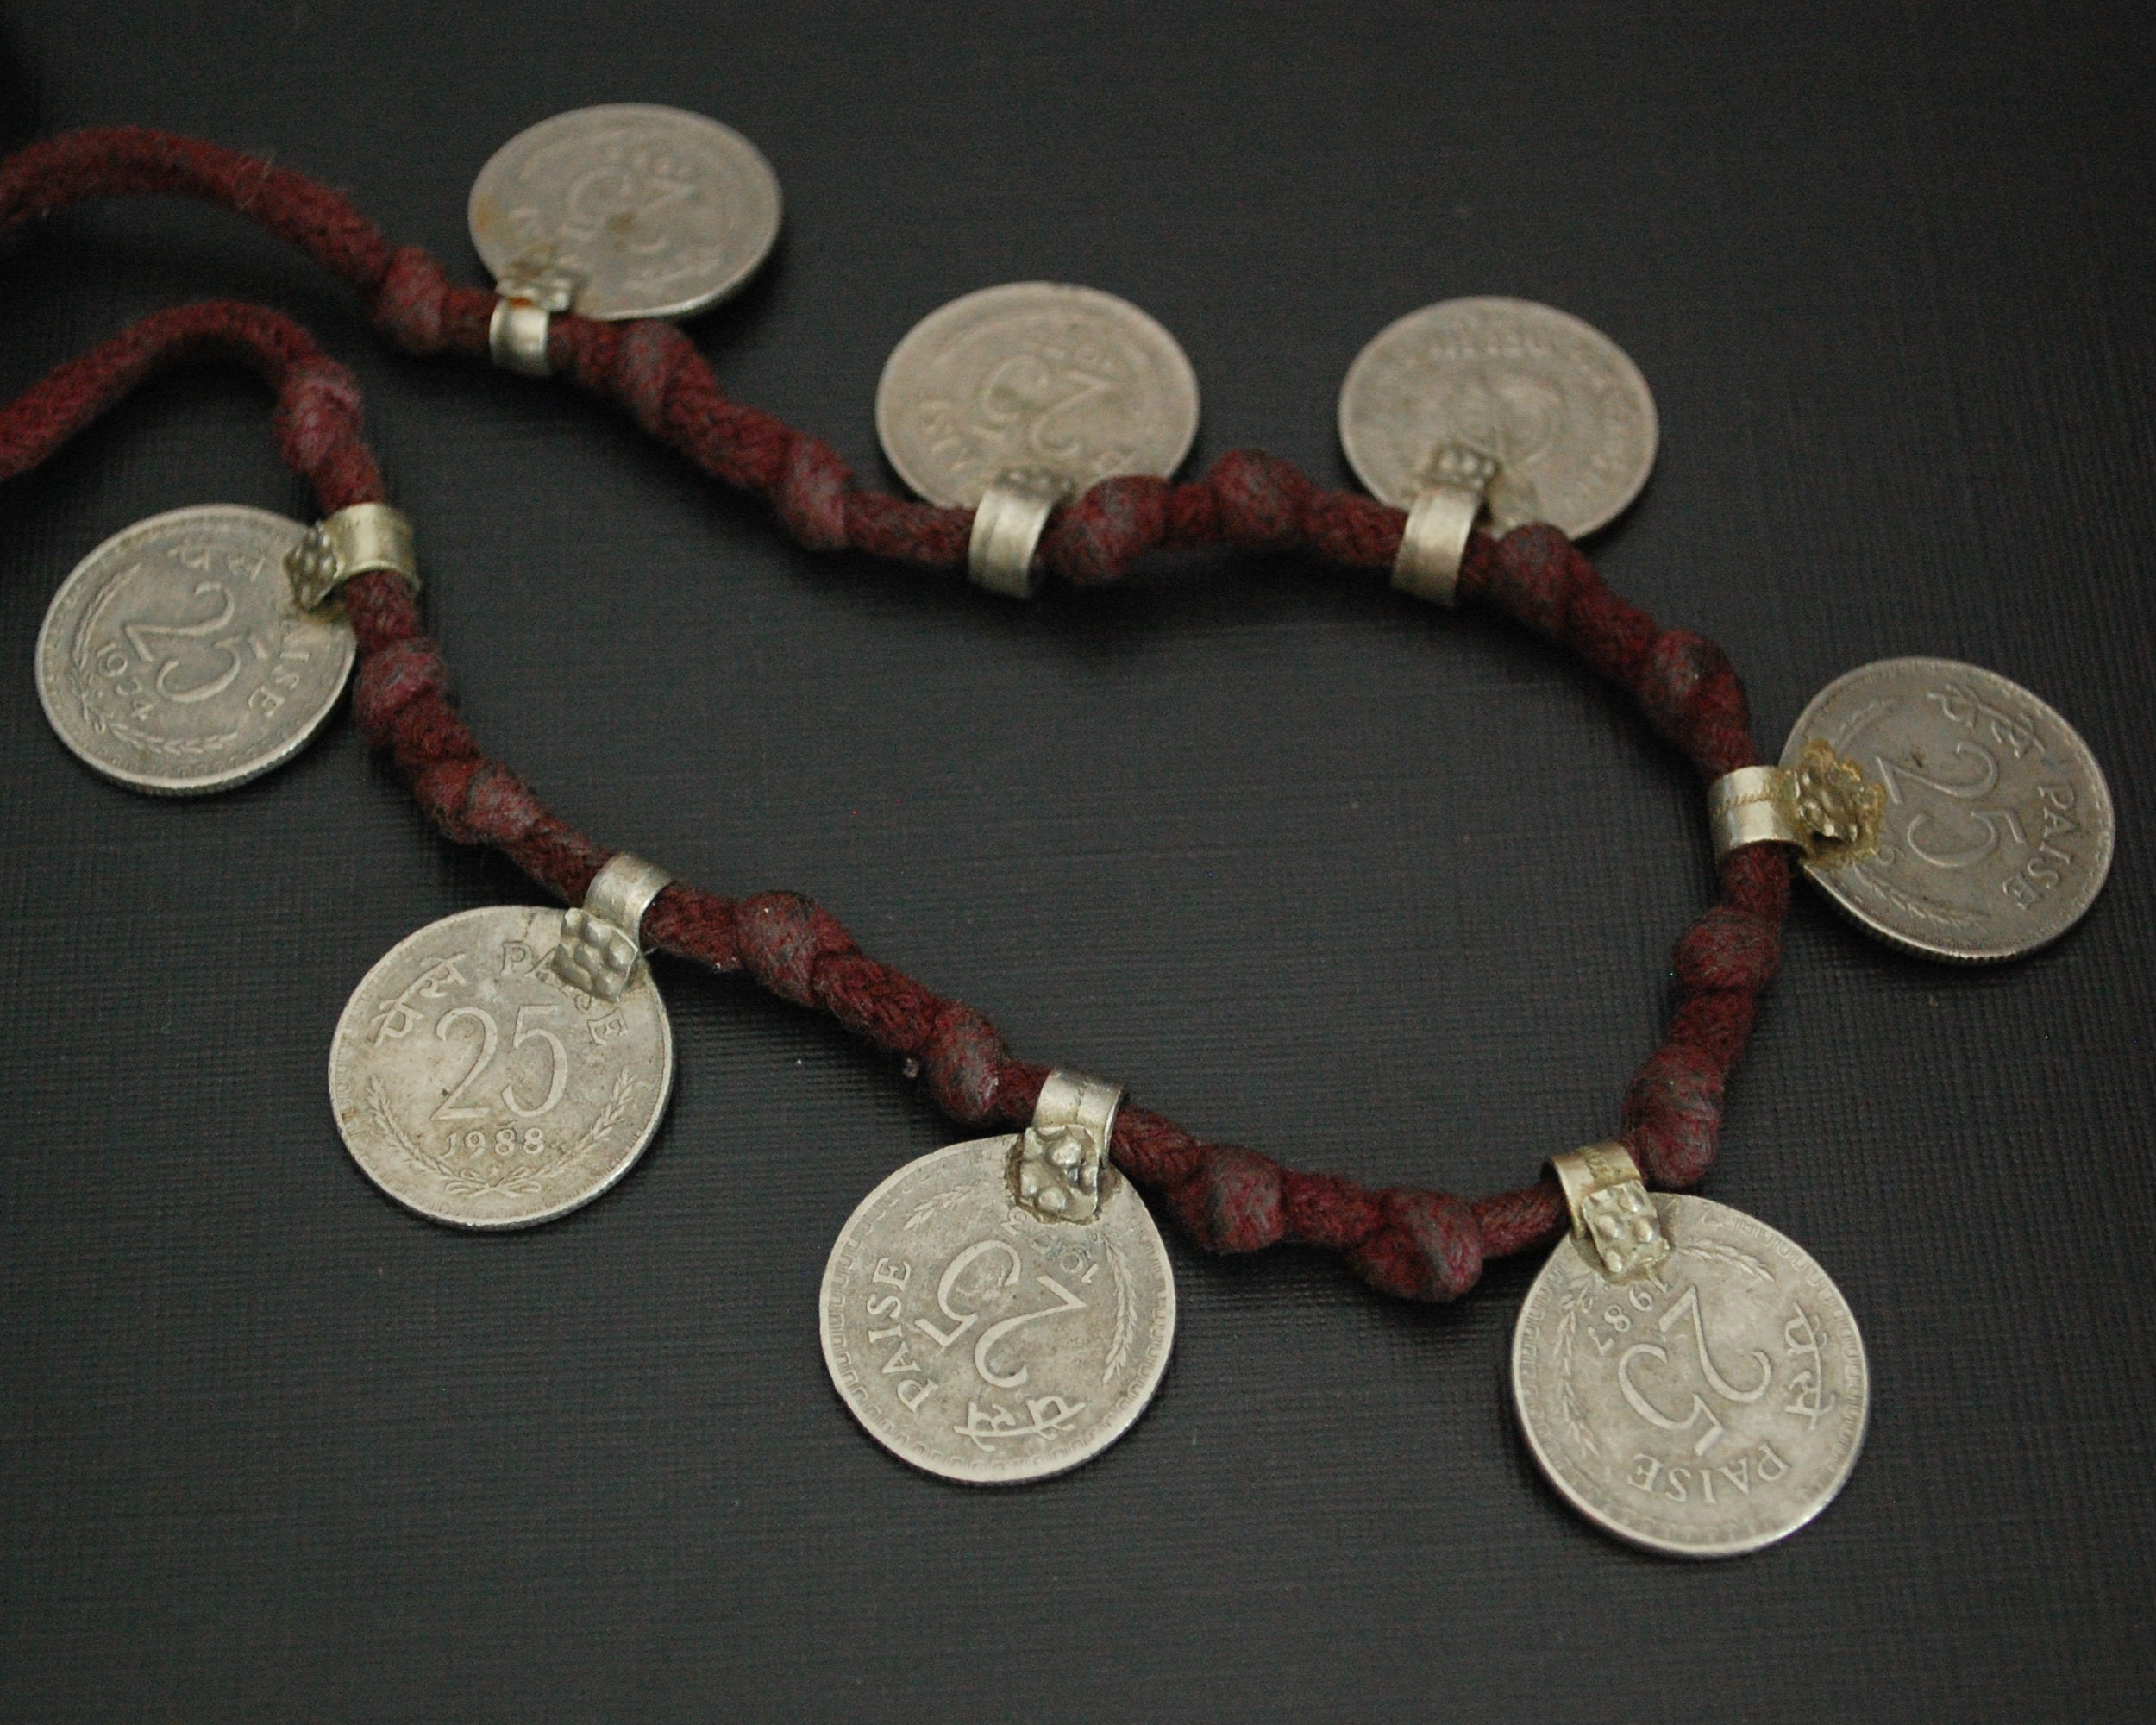 Old Indian Coins Necklace on Cotton Cord